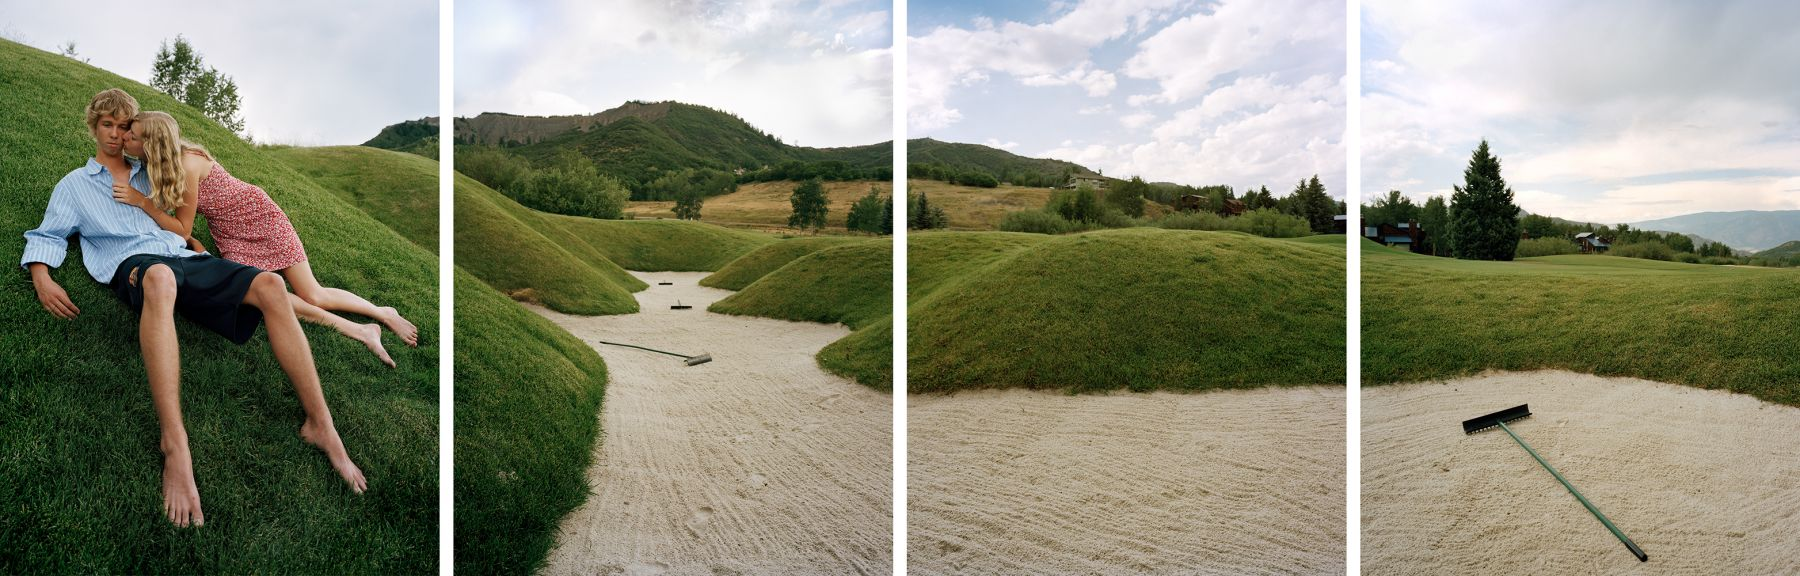 Trap, 2007. Four-panel archival pigment print, available as 24 x 80 or 40 x 120 inches.